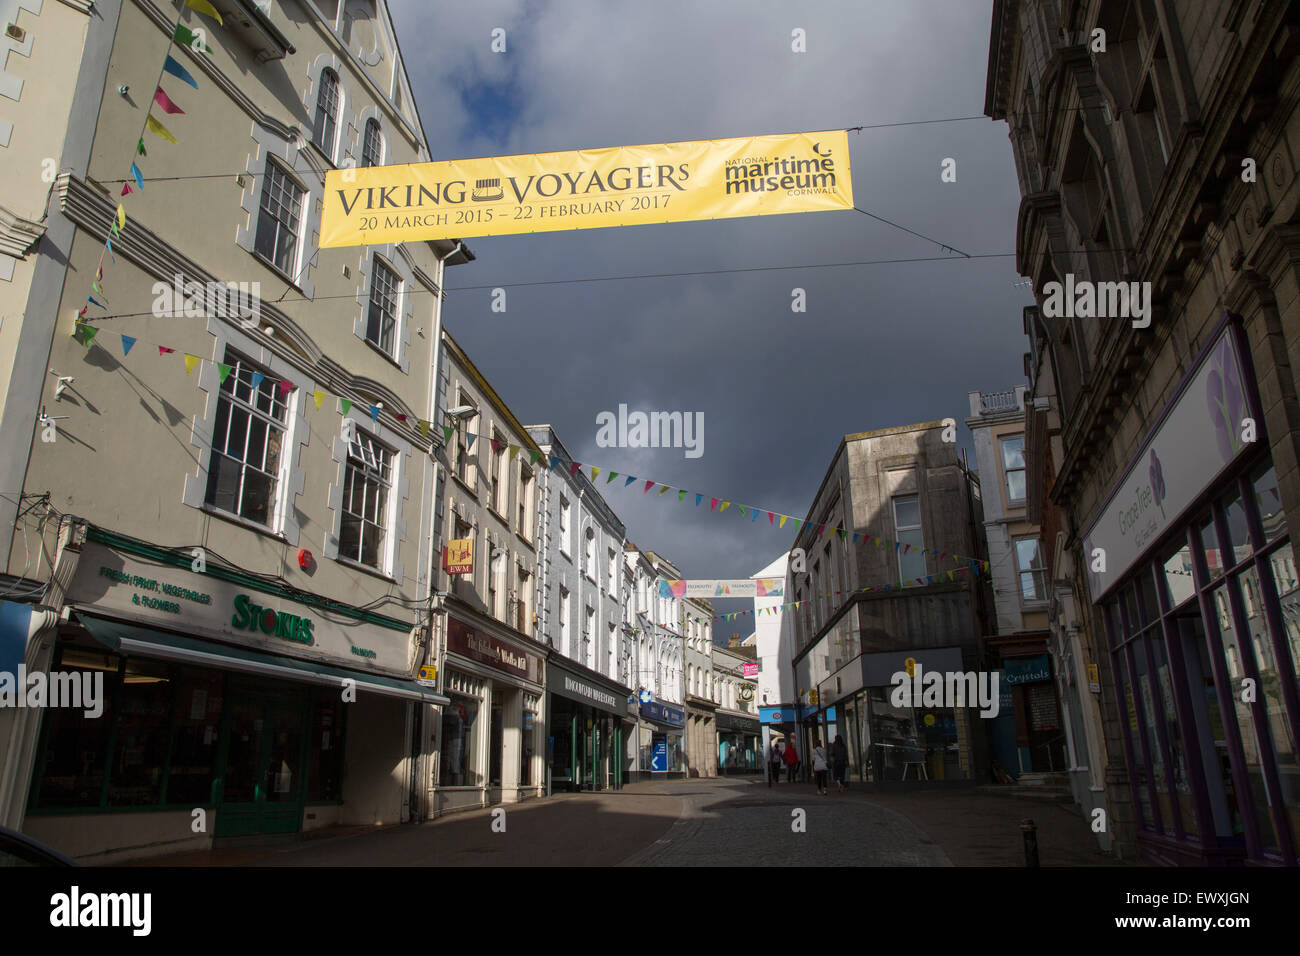 Threatening grey rain clouds over town centre street, Falmouth, Cornwall, England Viking Voyagers advertising banner - Stock Image